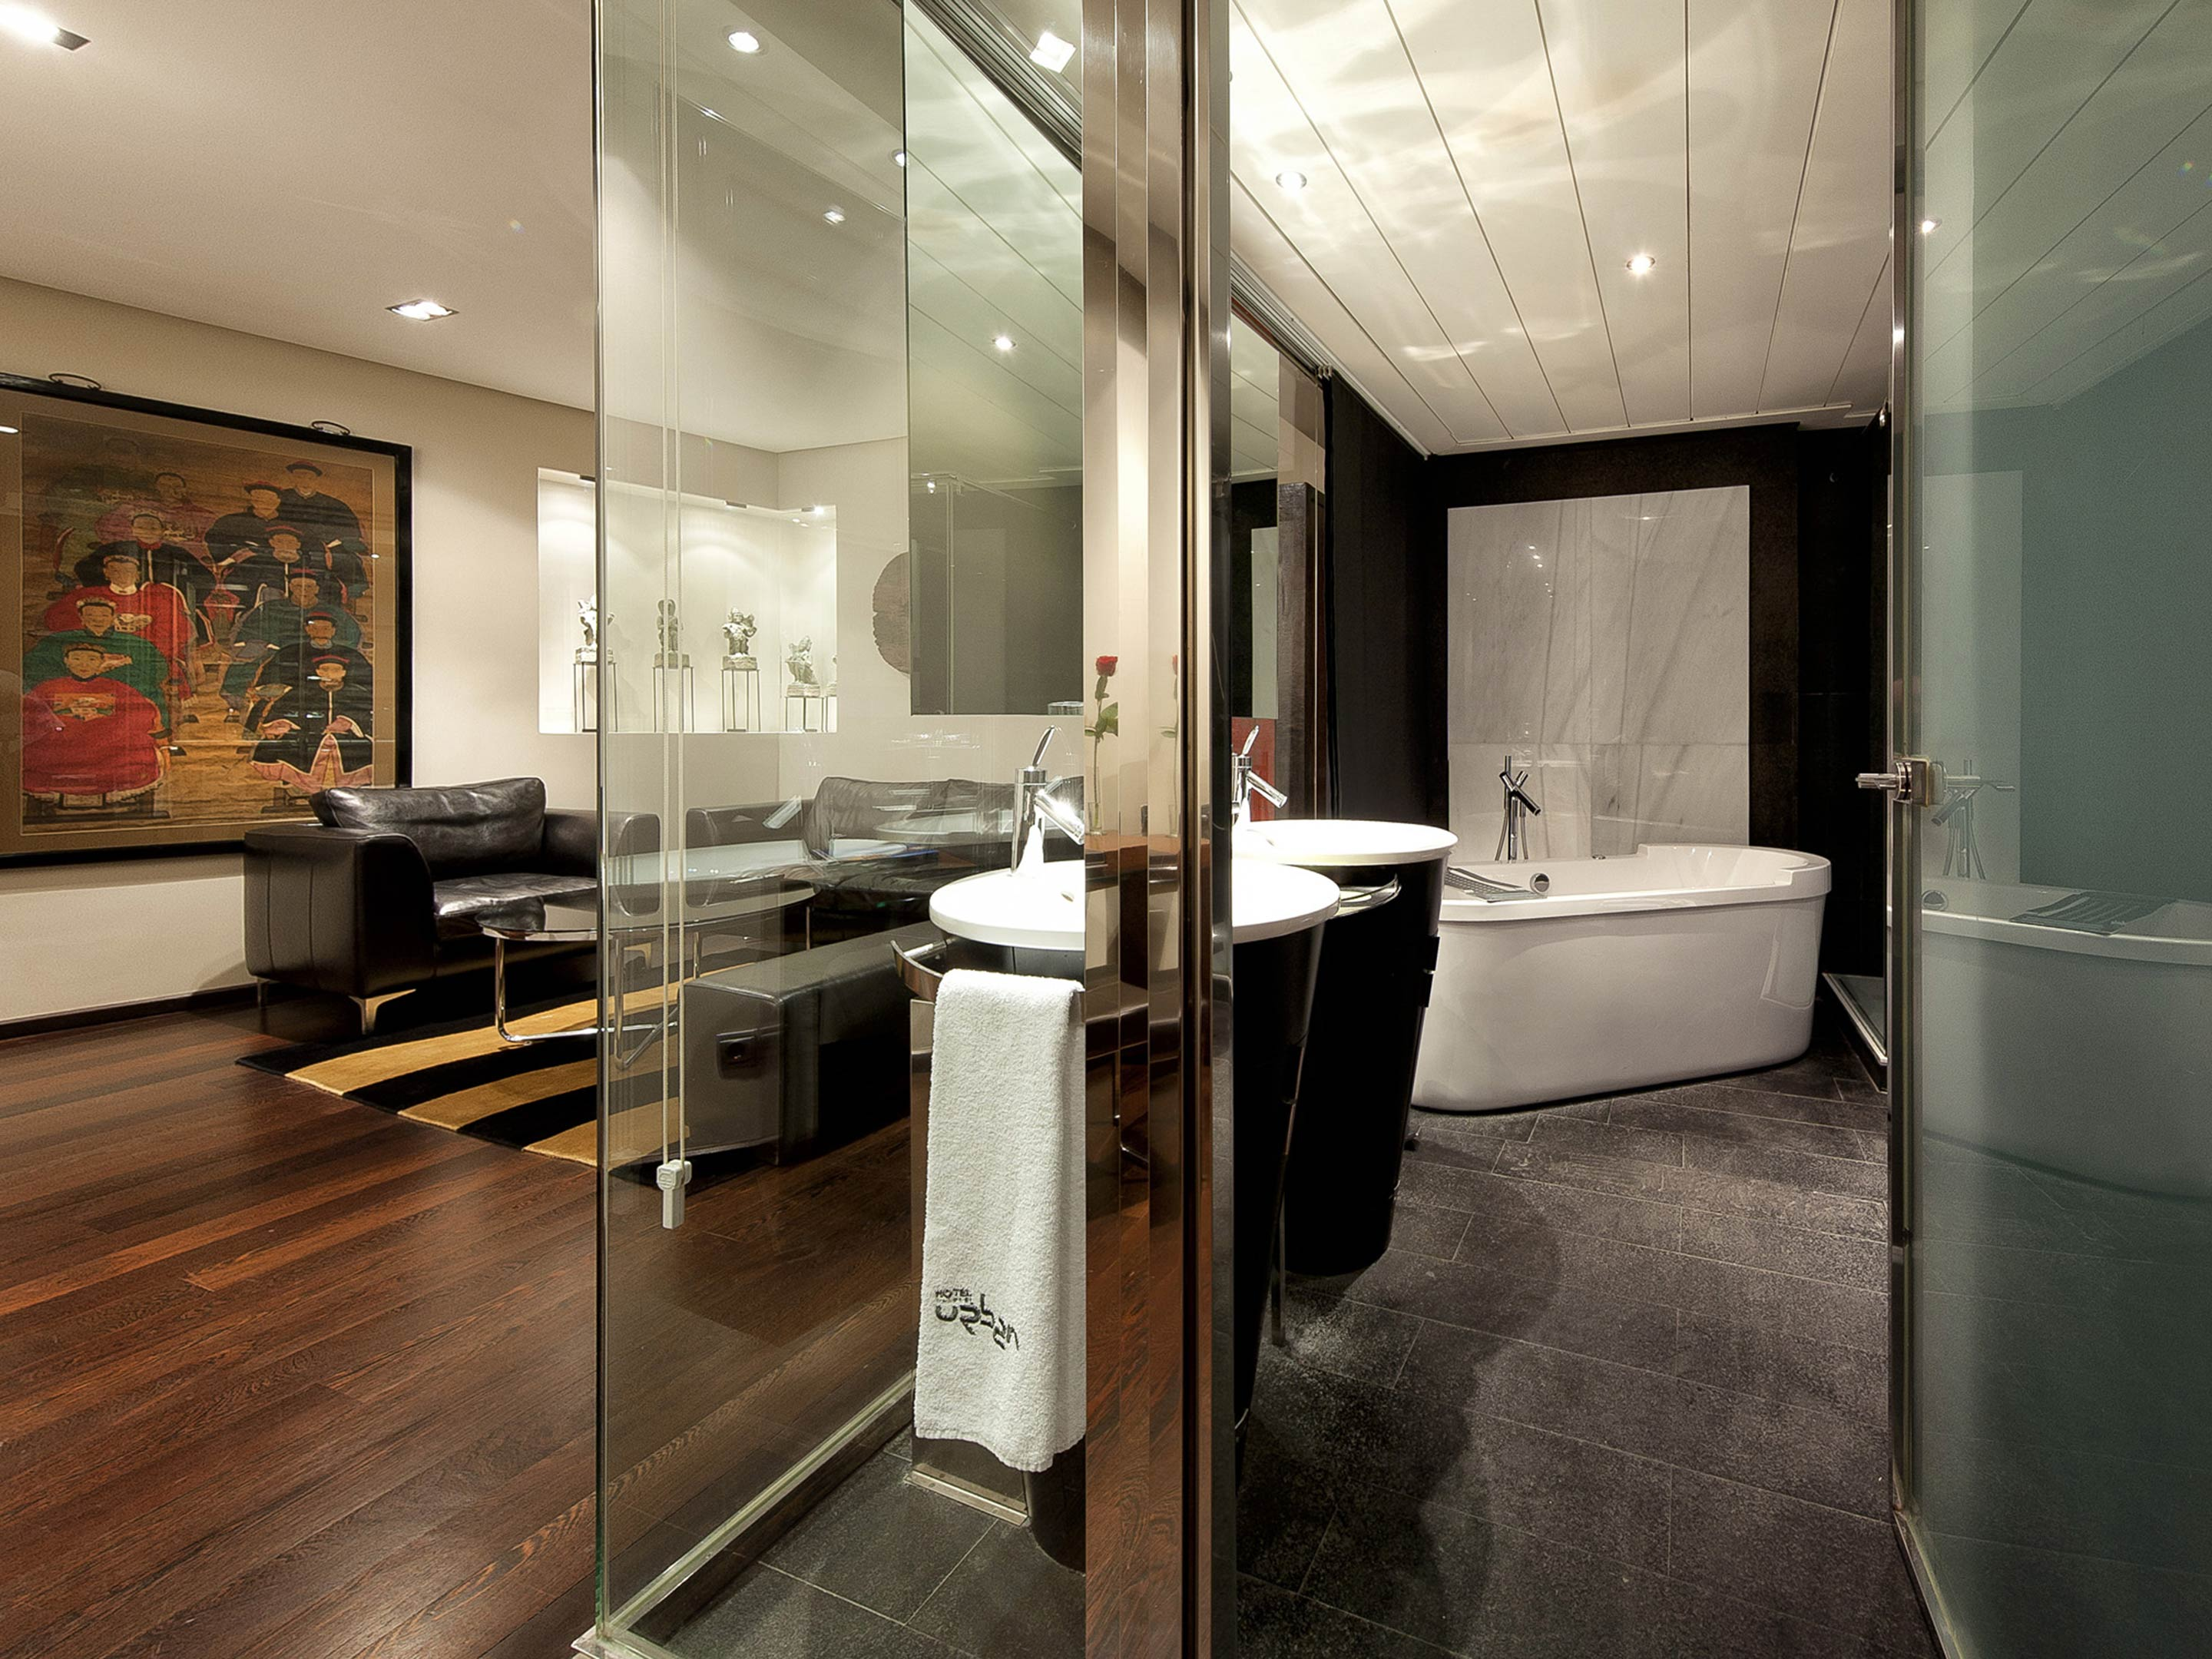 Rooms Amp Suites At Hotel Urban In Madrid Spain Design